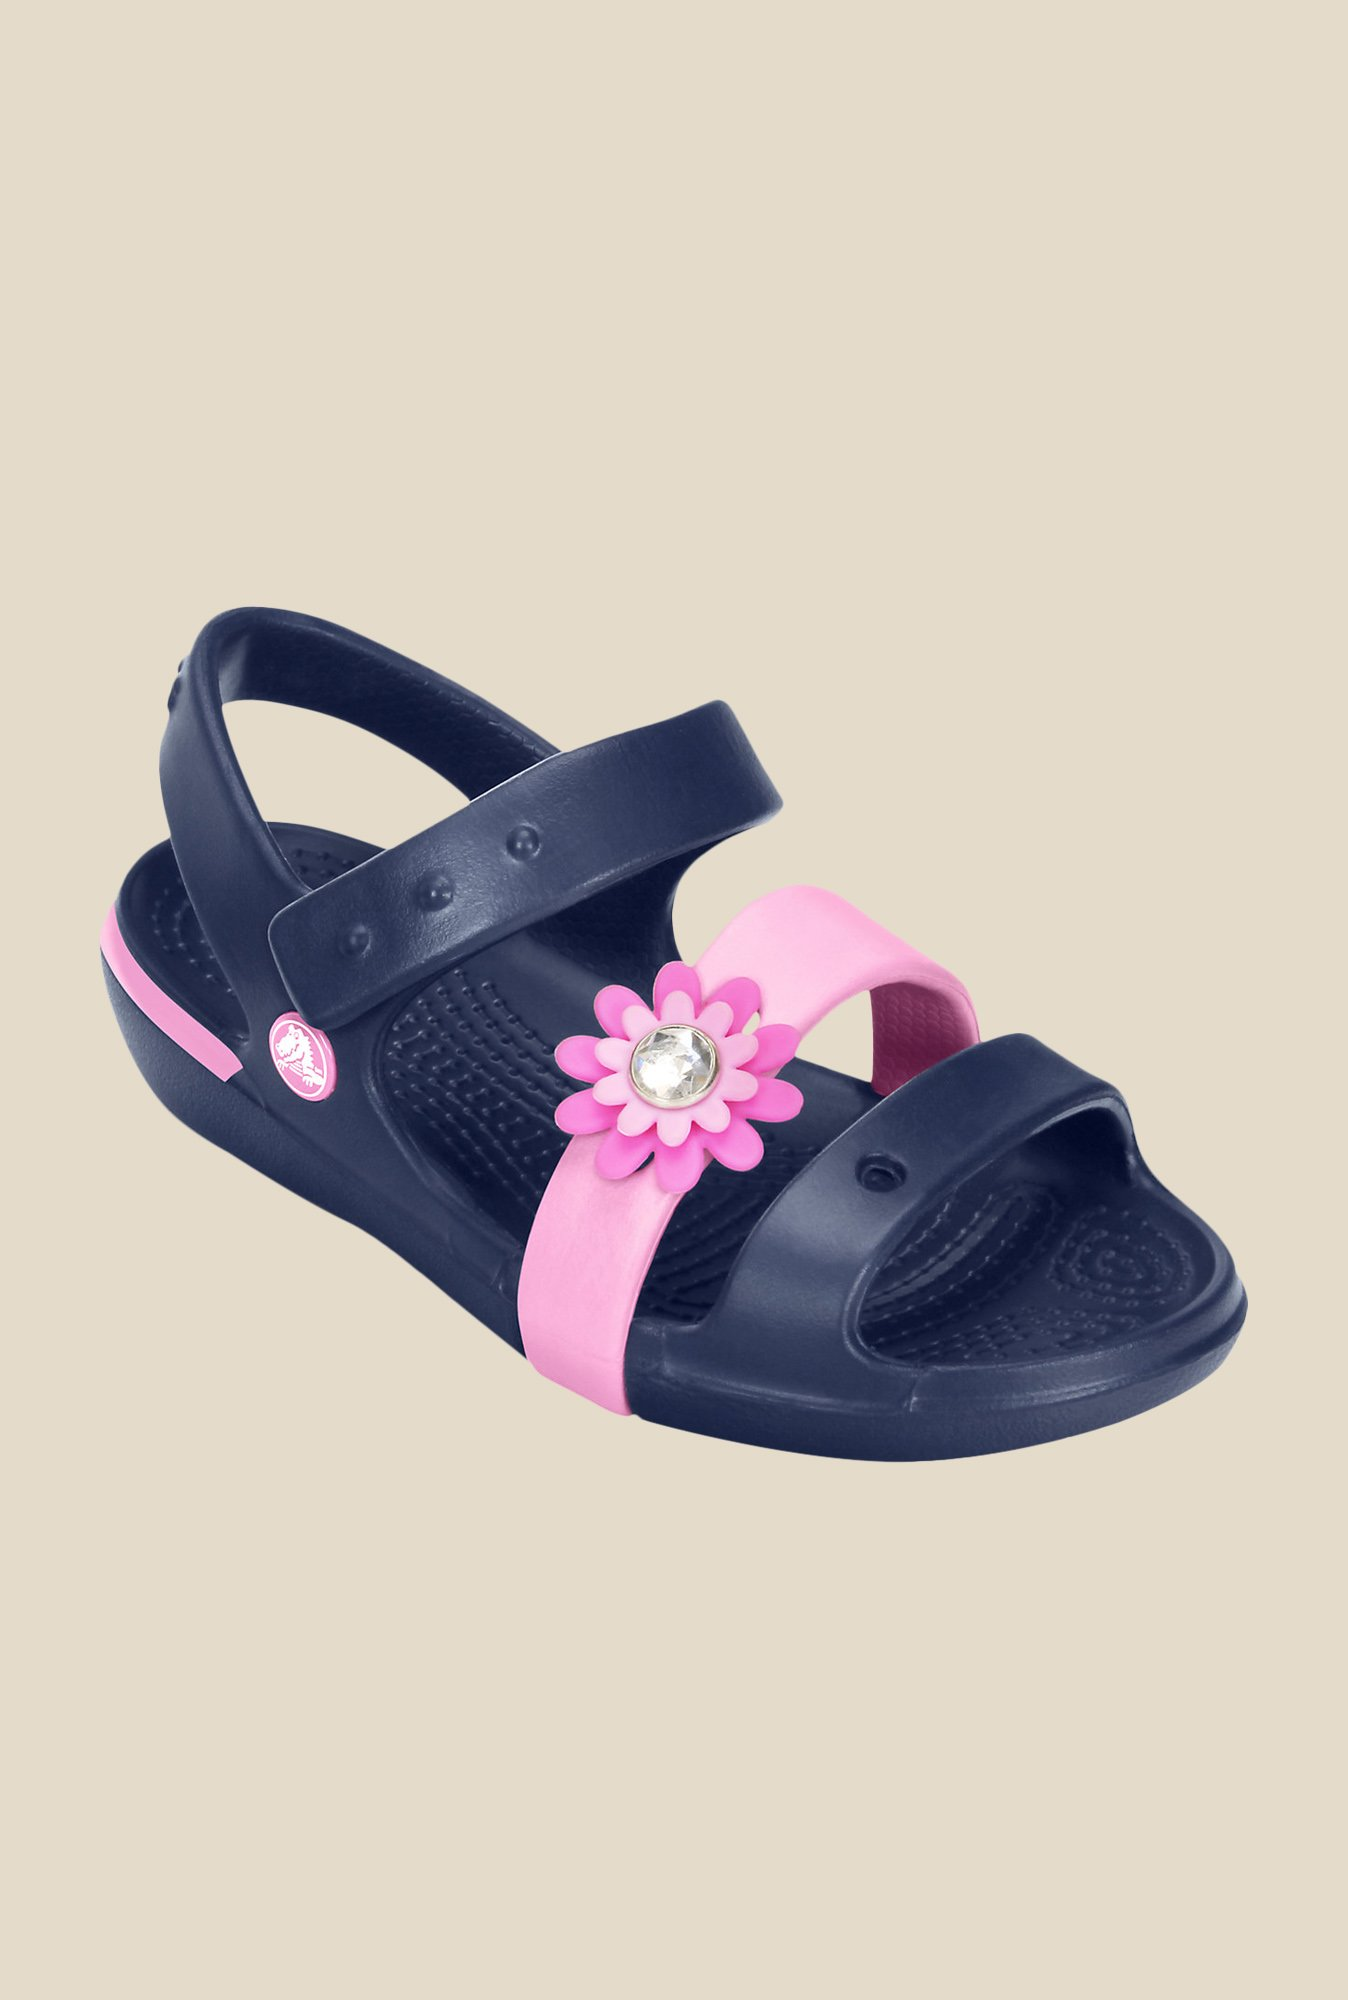 Crocs Keeley Petal Charm Navy & Carnation Floater Sandals